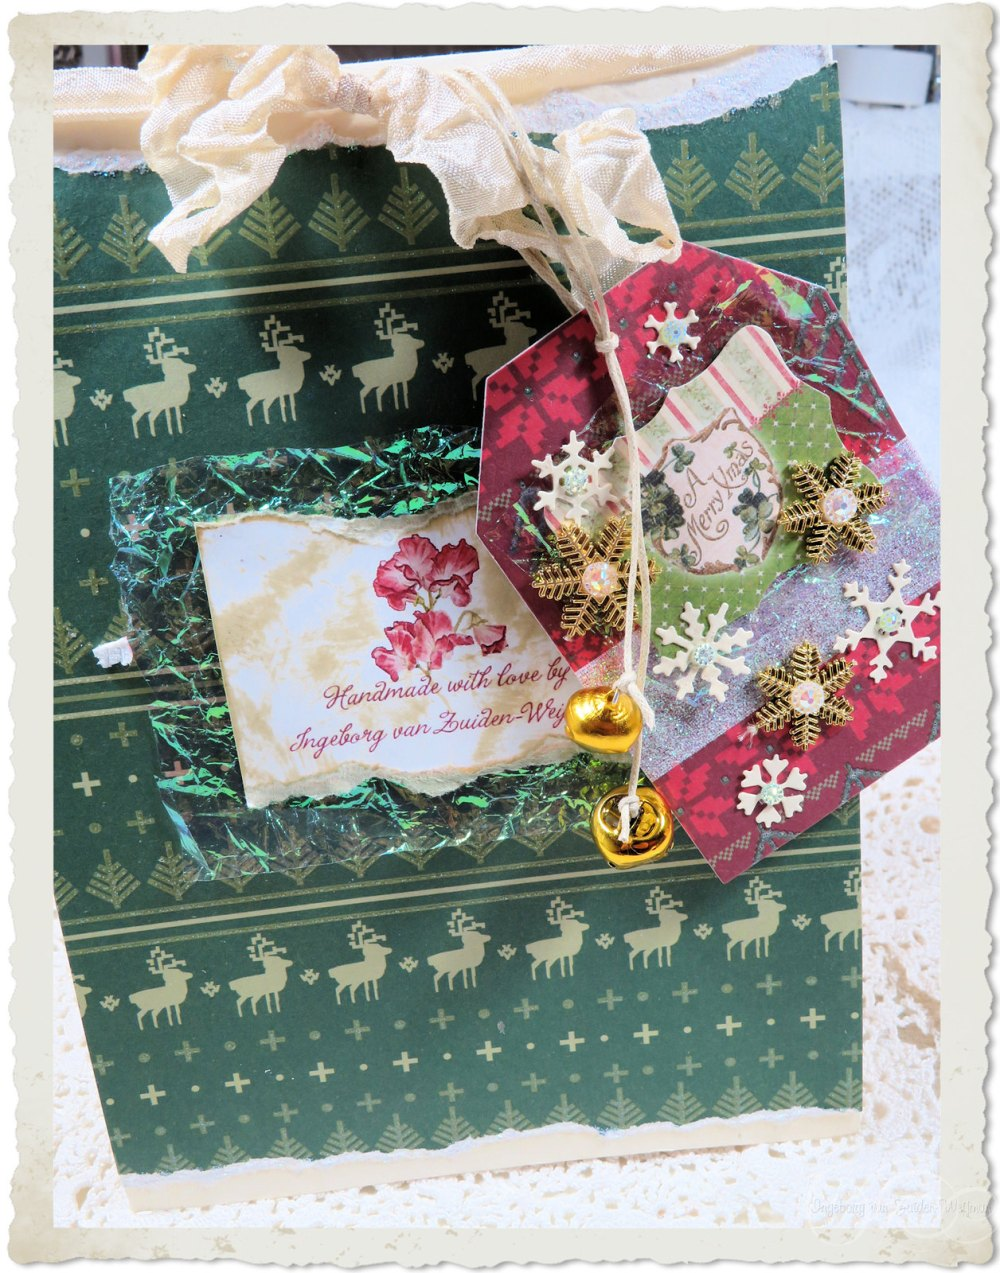 Backside of red roses Christmas card by Ingeborg van Zuiden